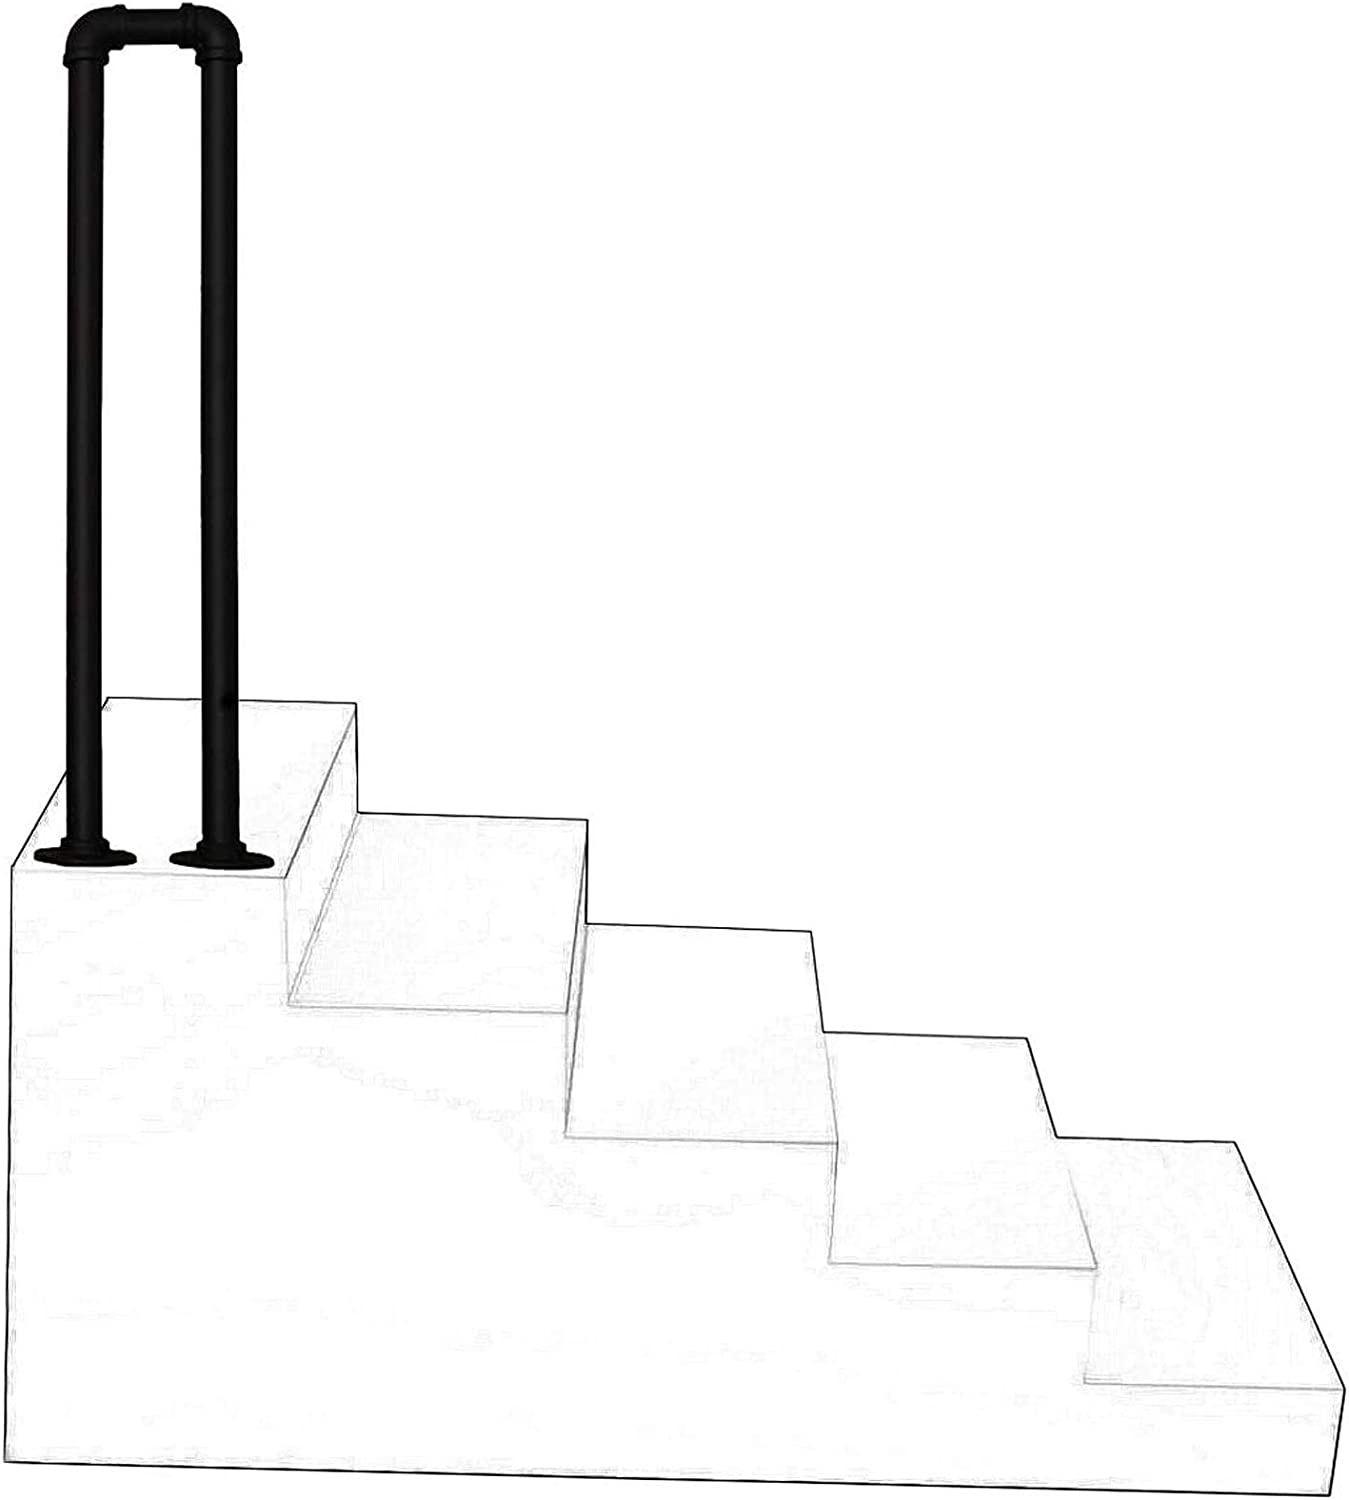 Free Shipping New XFSHKJS Max 46% OFF 1 Step Black Stair Handrail Wrought U-Shaped Safet Iron